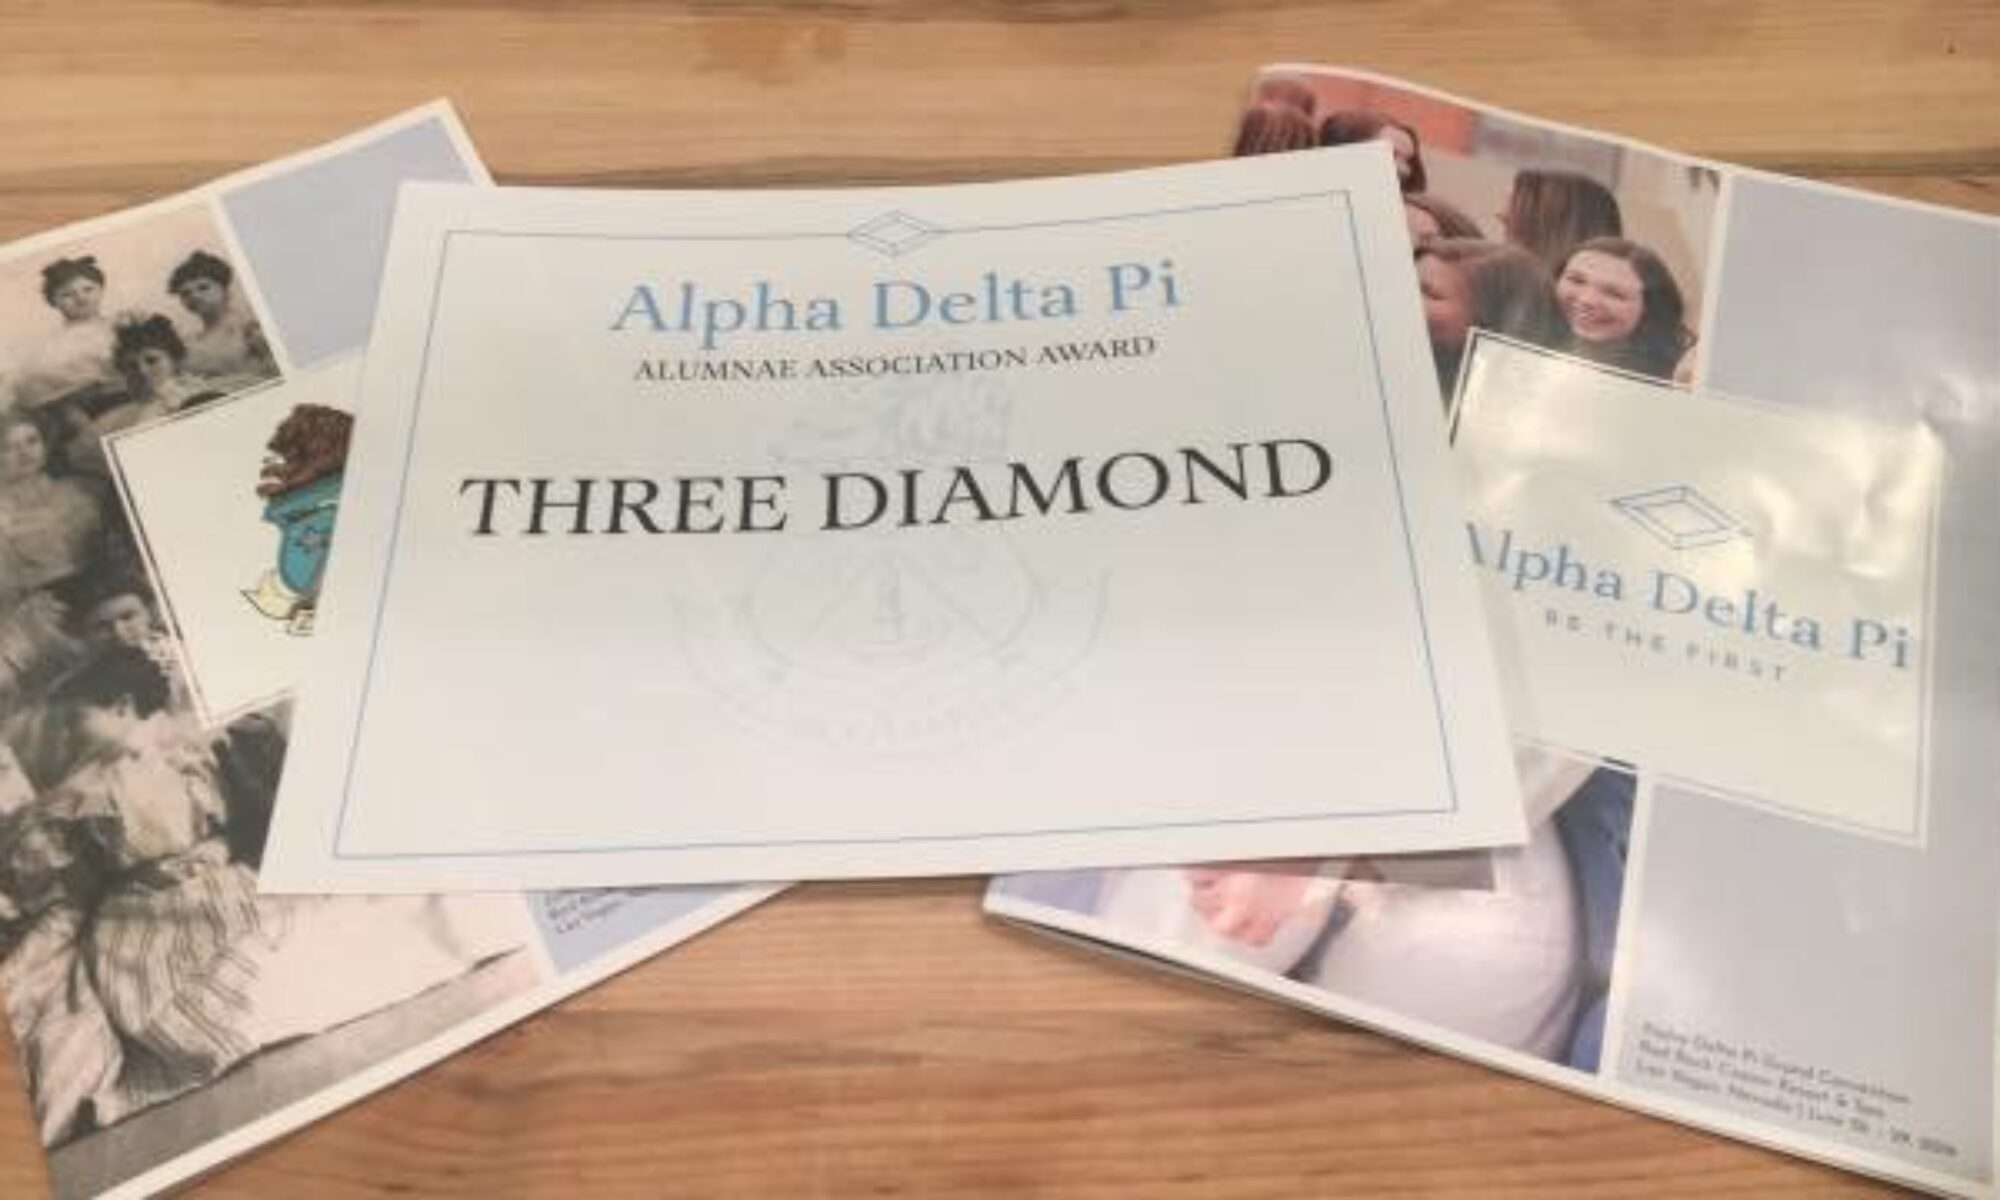 Zeta Chi Chapter Alumnae Association - Alpha Delta Pi